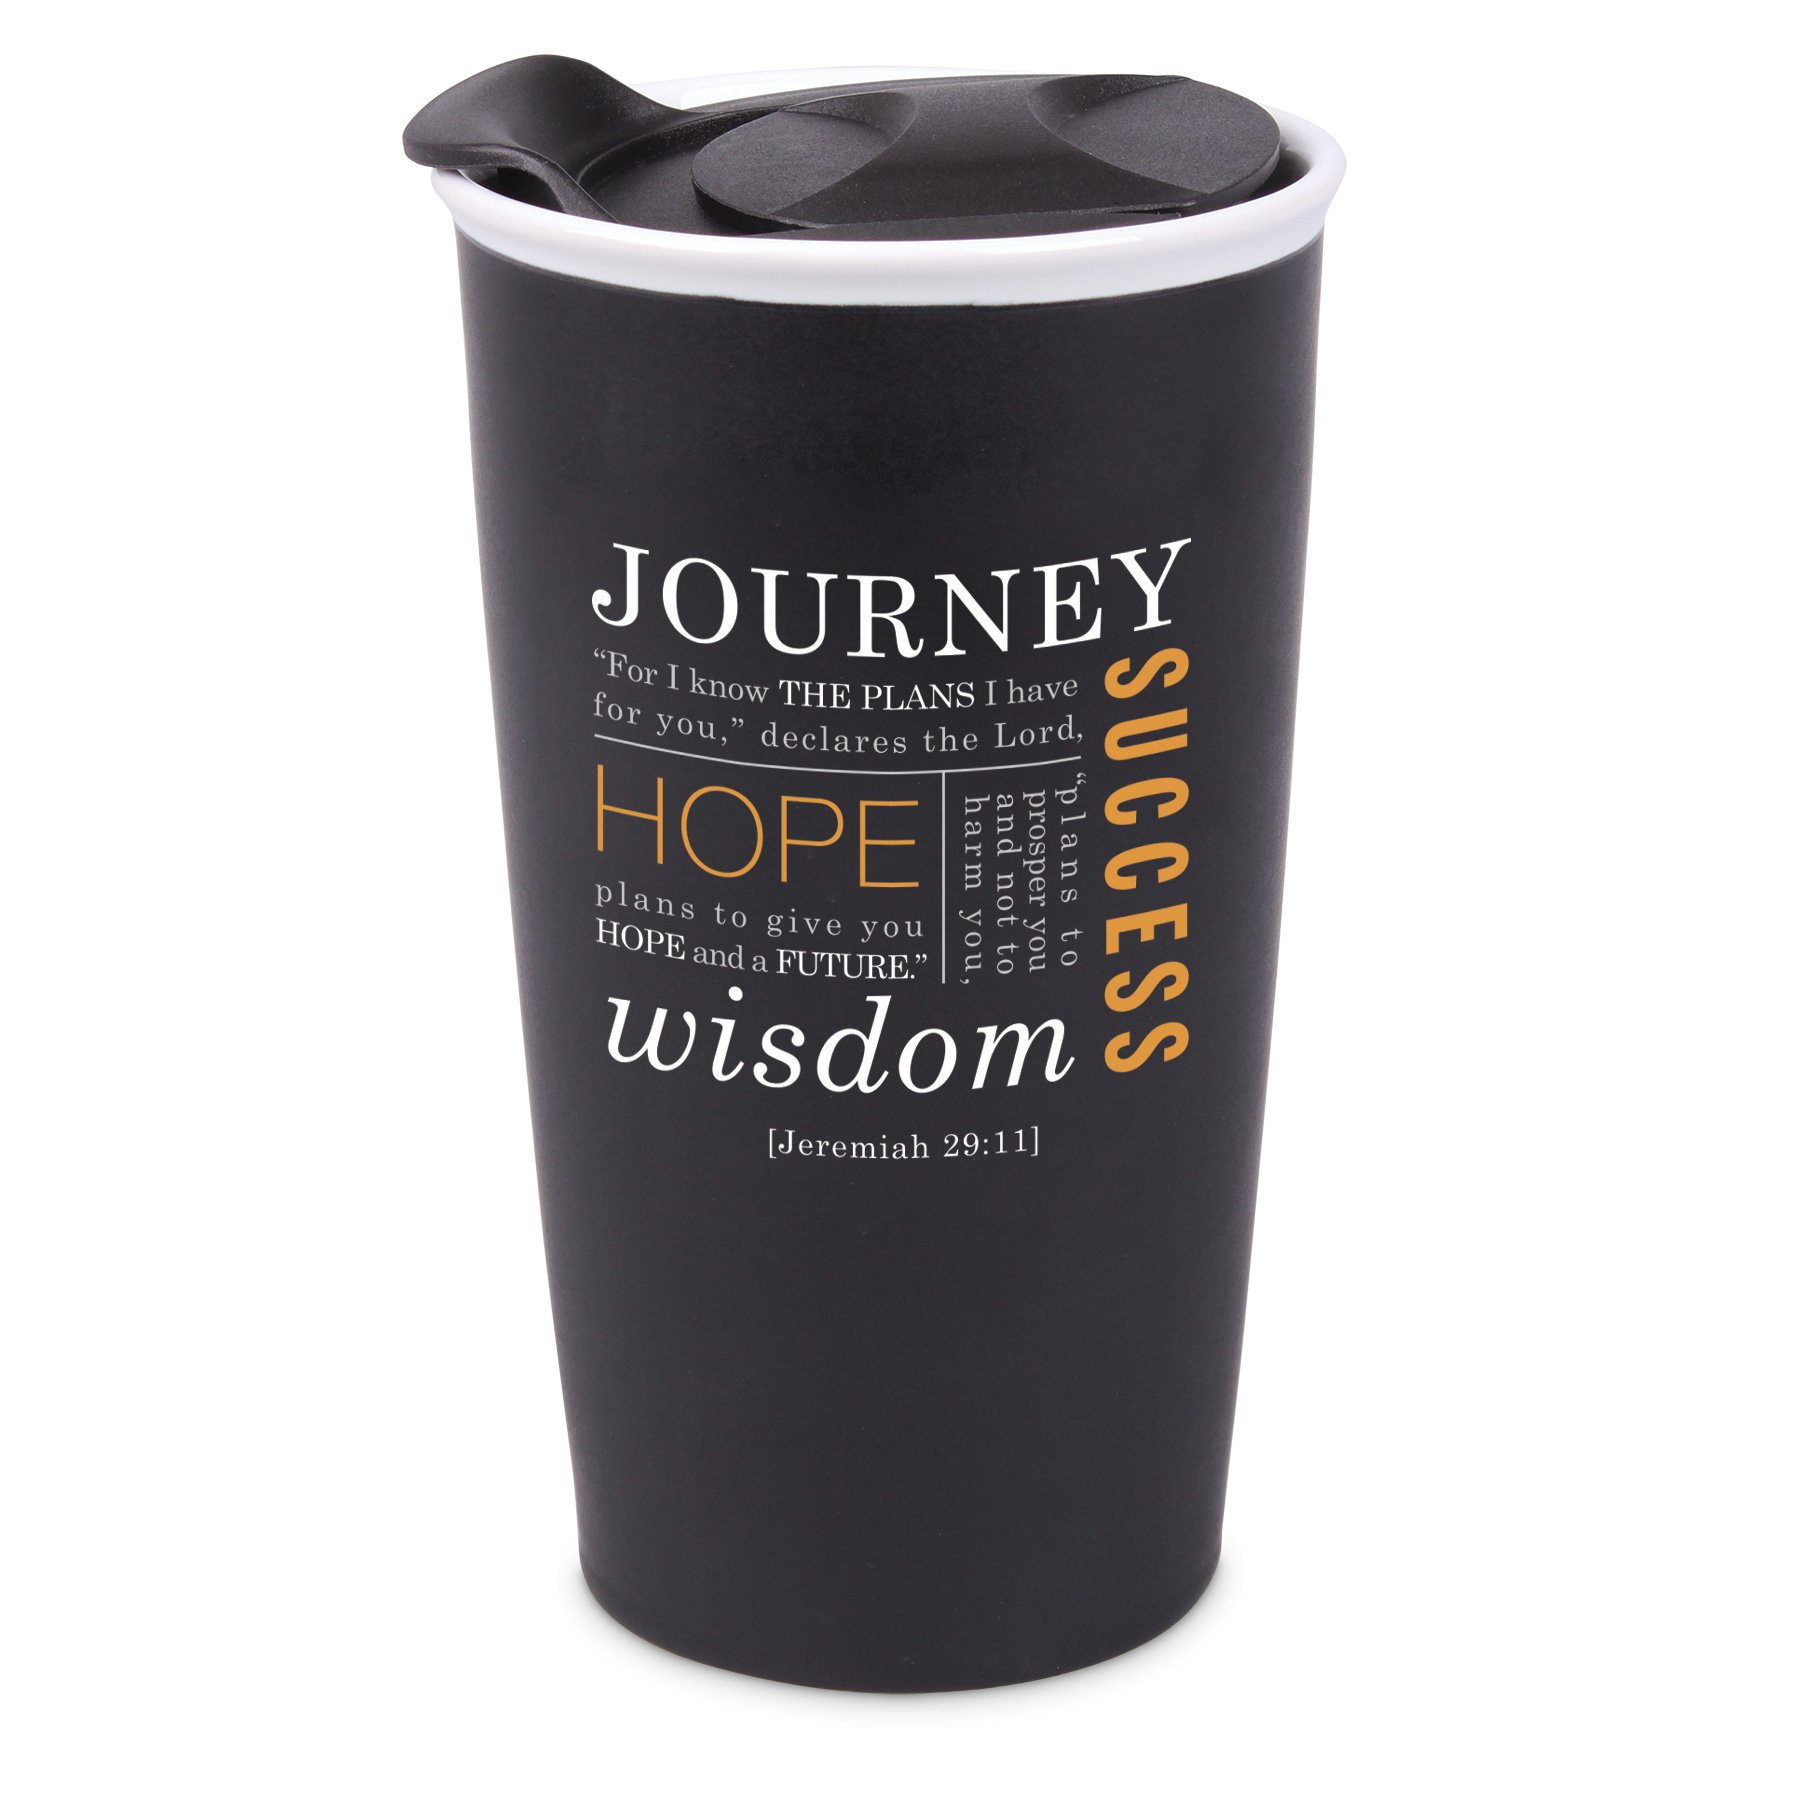 Lighthouse Christian Products Journey Ceramic Tumbler Mug, Black by Lighthouse Christian Products